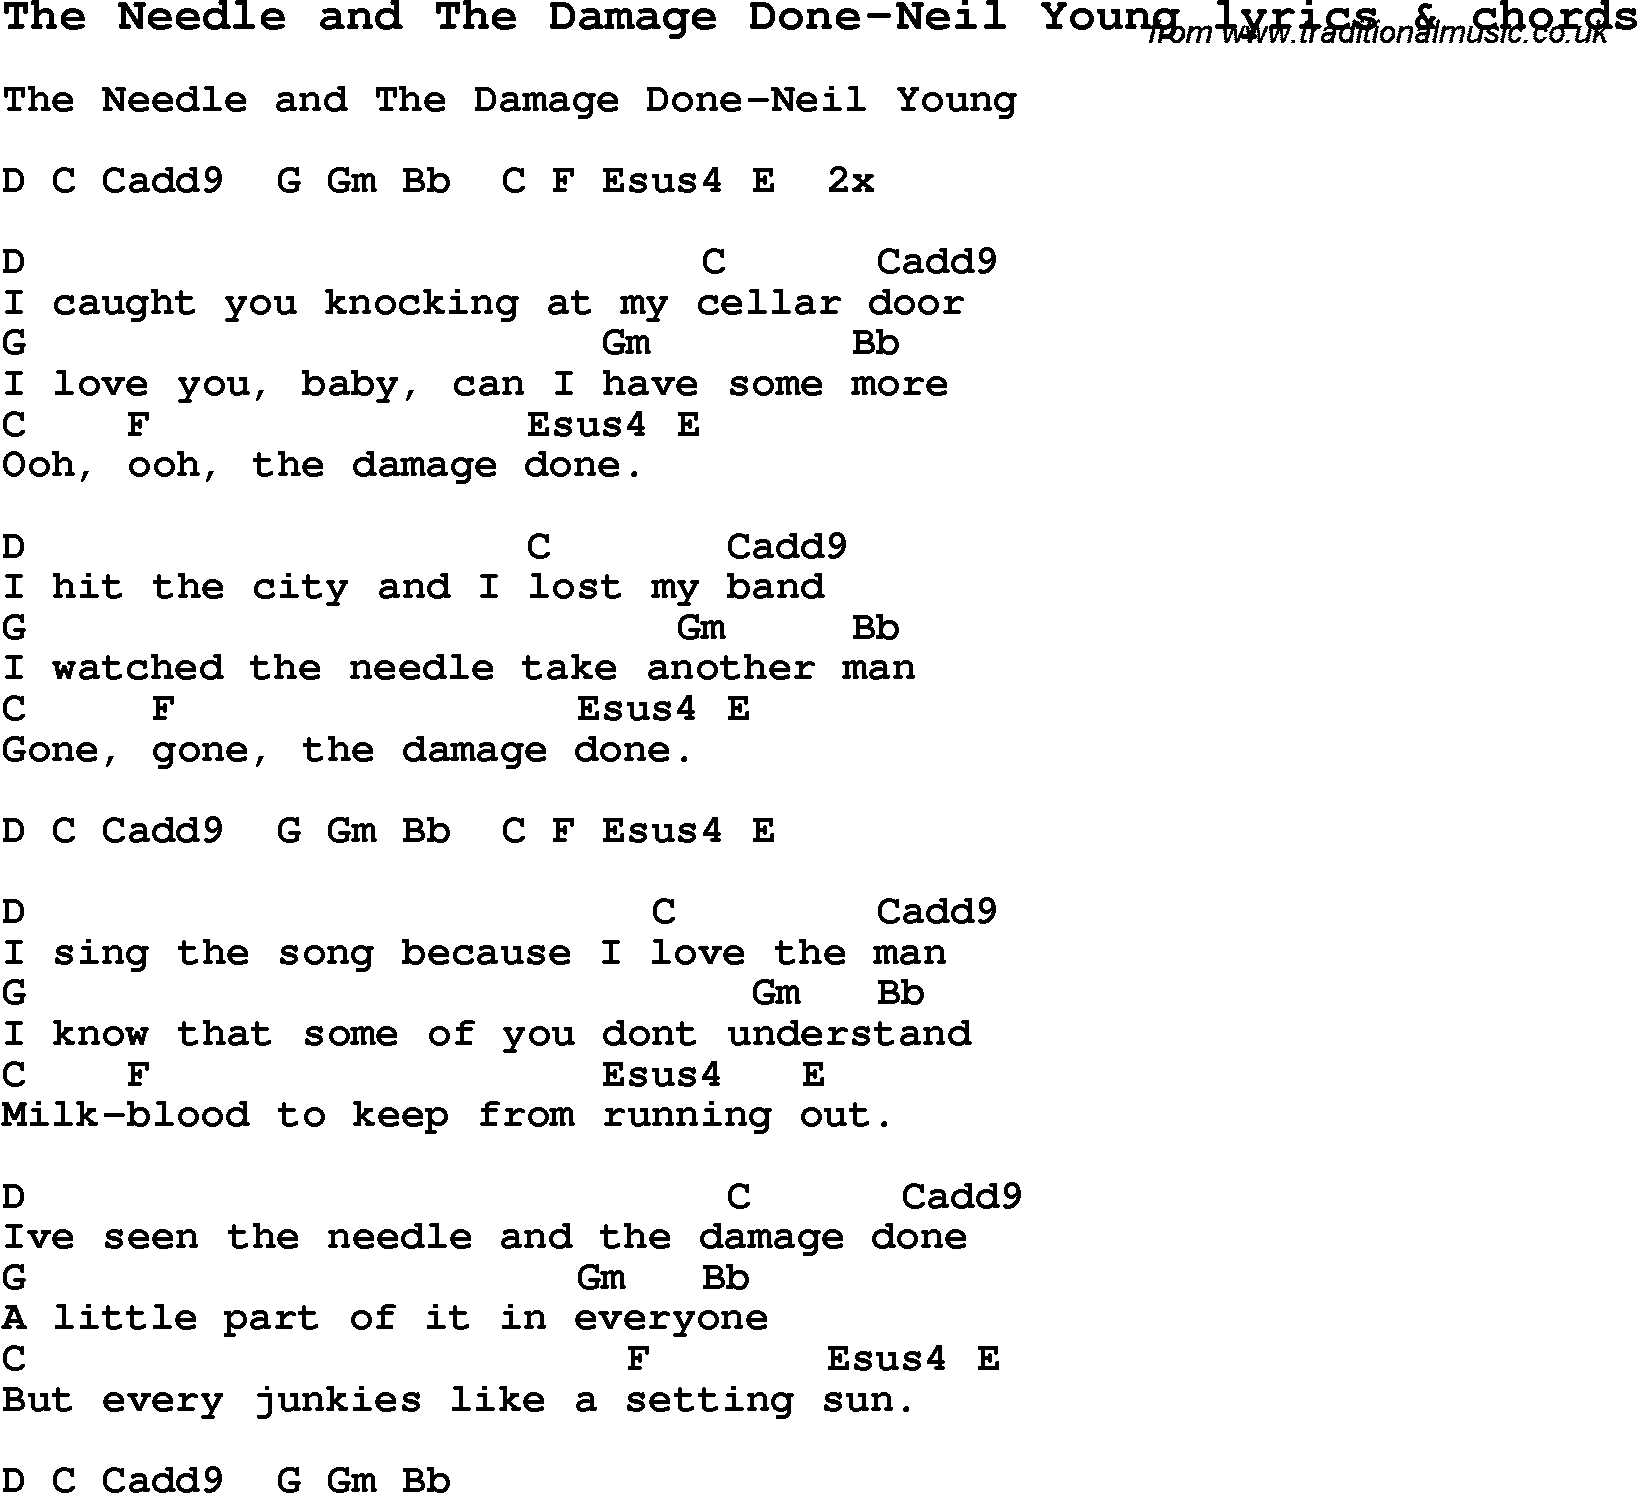 Love Song Lyrics for:The Needle and The Damage Done-Neil Young with chords.